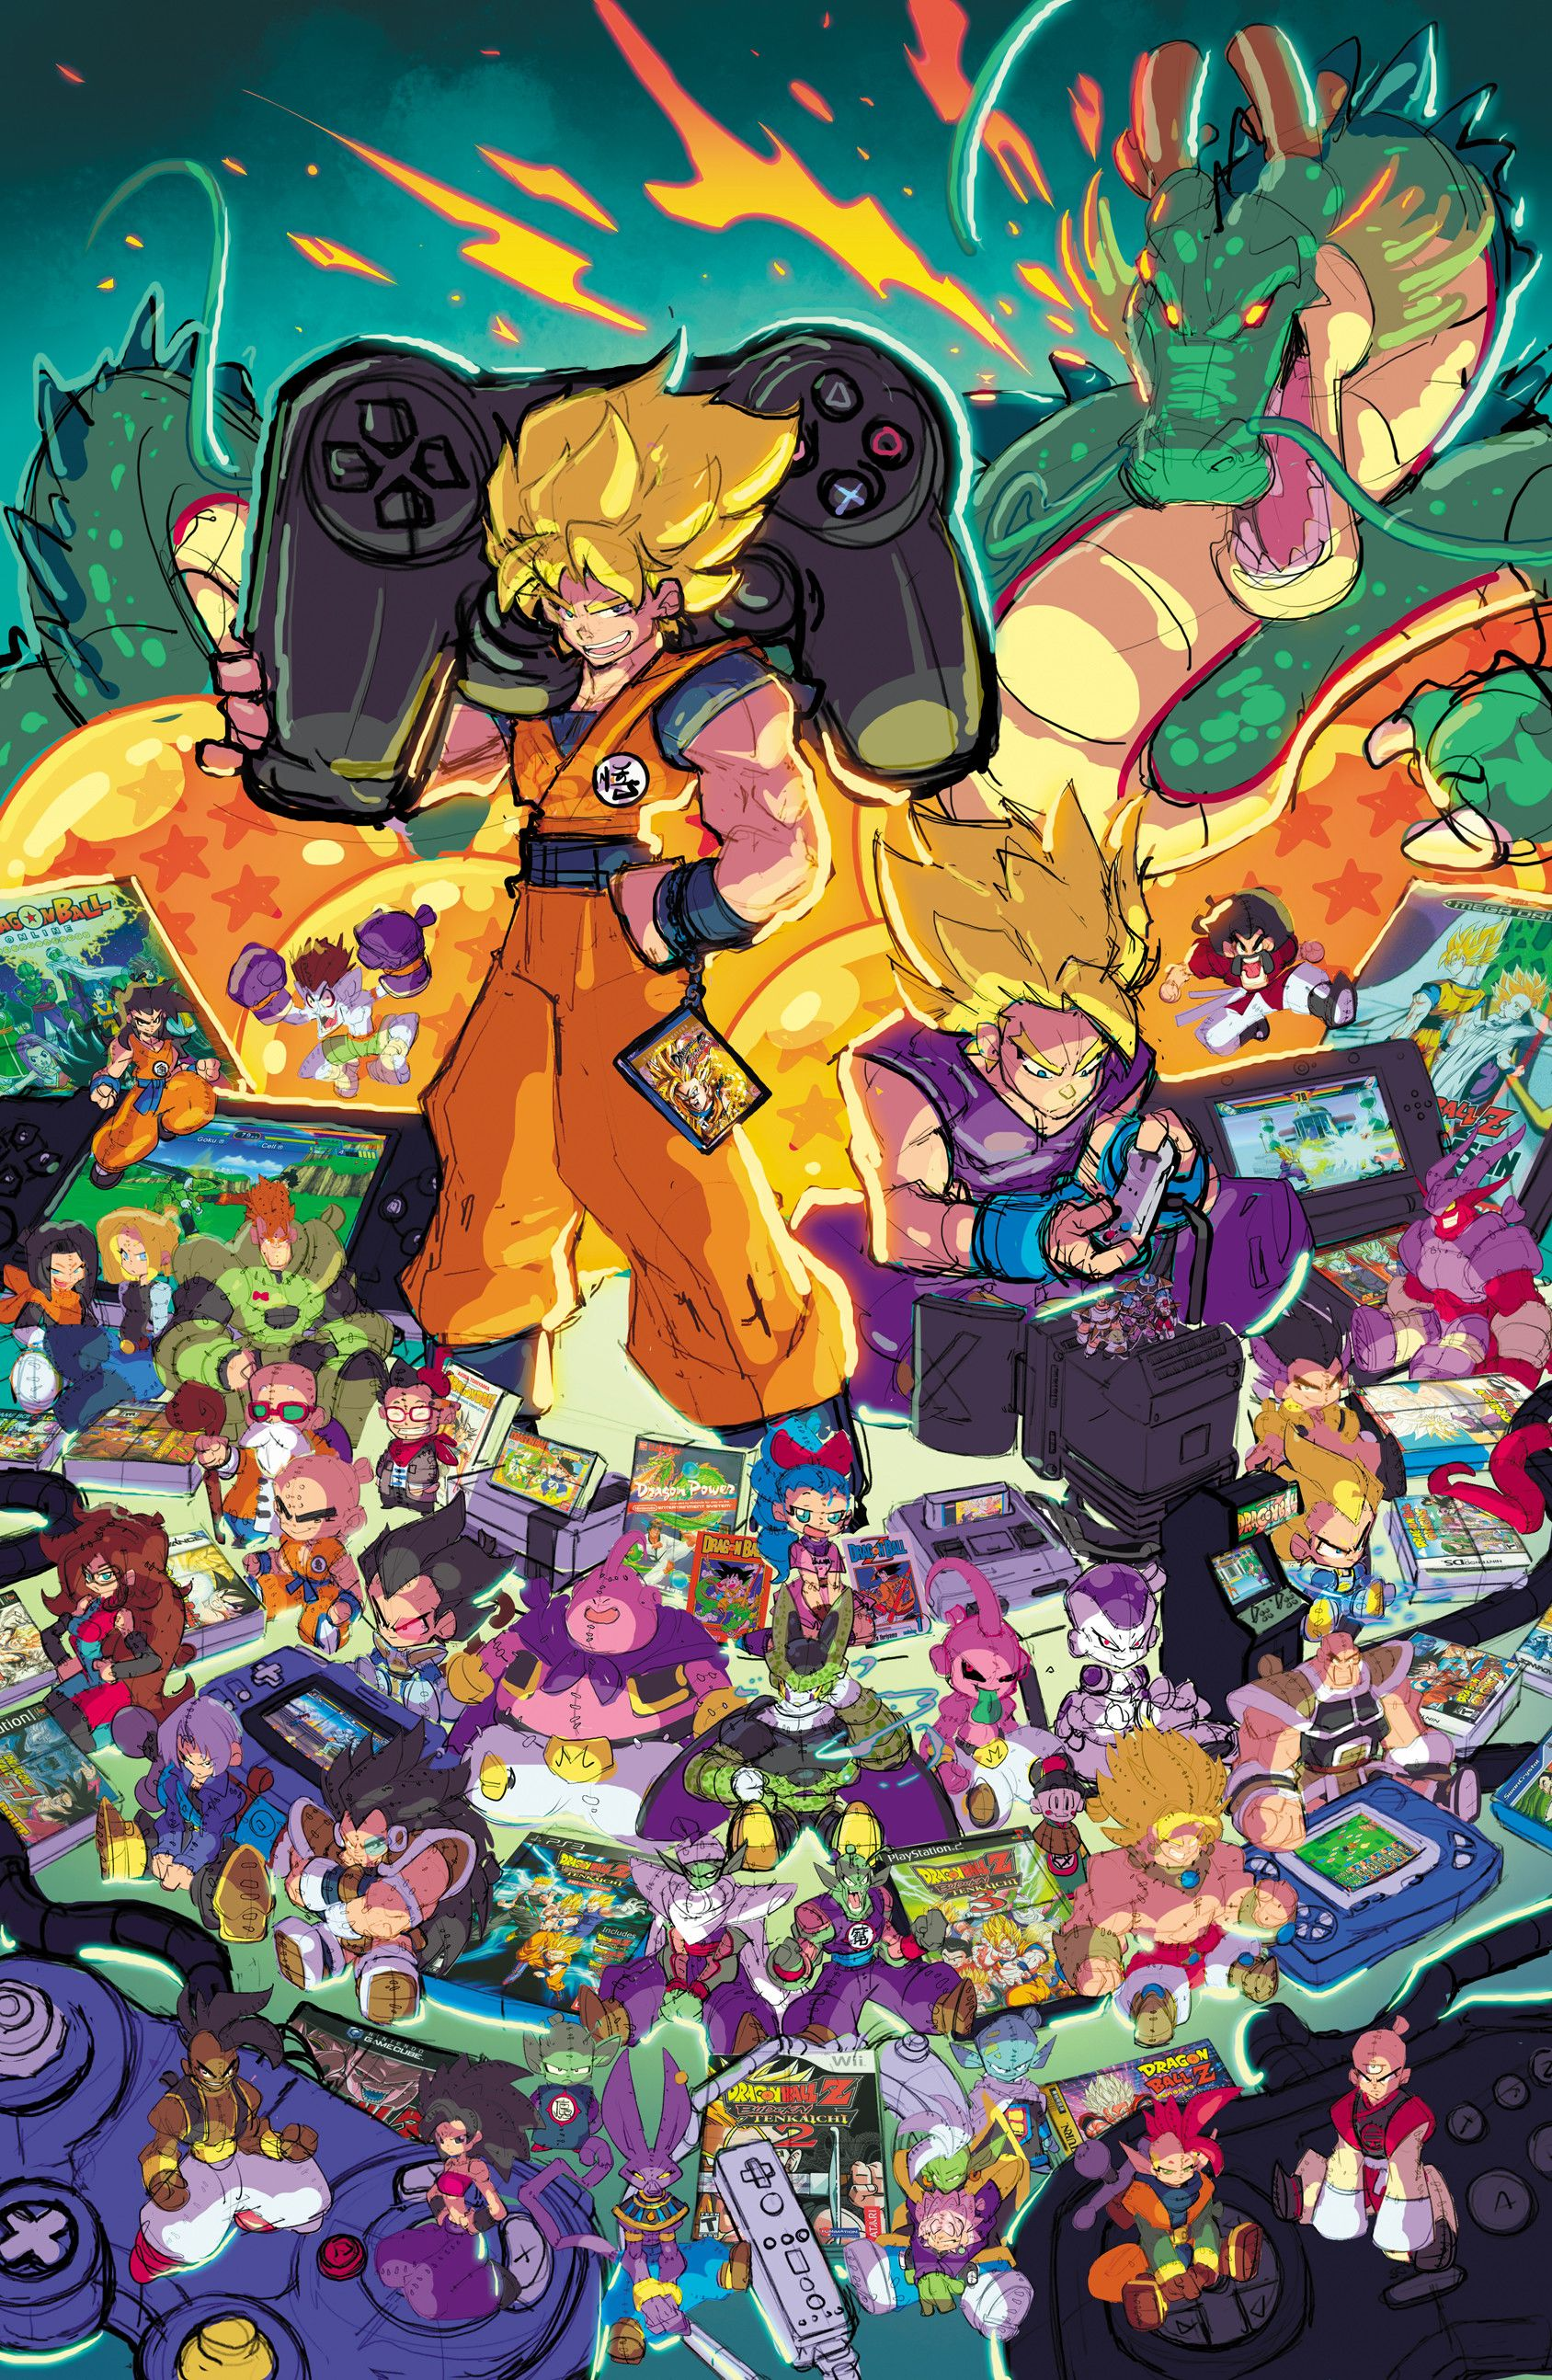 Artstation Dragonball Tribute The Game Magazine Cover Art Rob Duenas In 2020 Anime Dragon Ball Super Dragon Ball Art Anime Dragon Ball